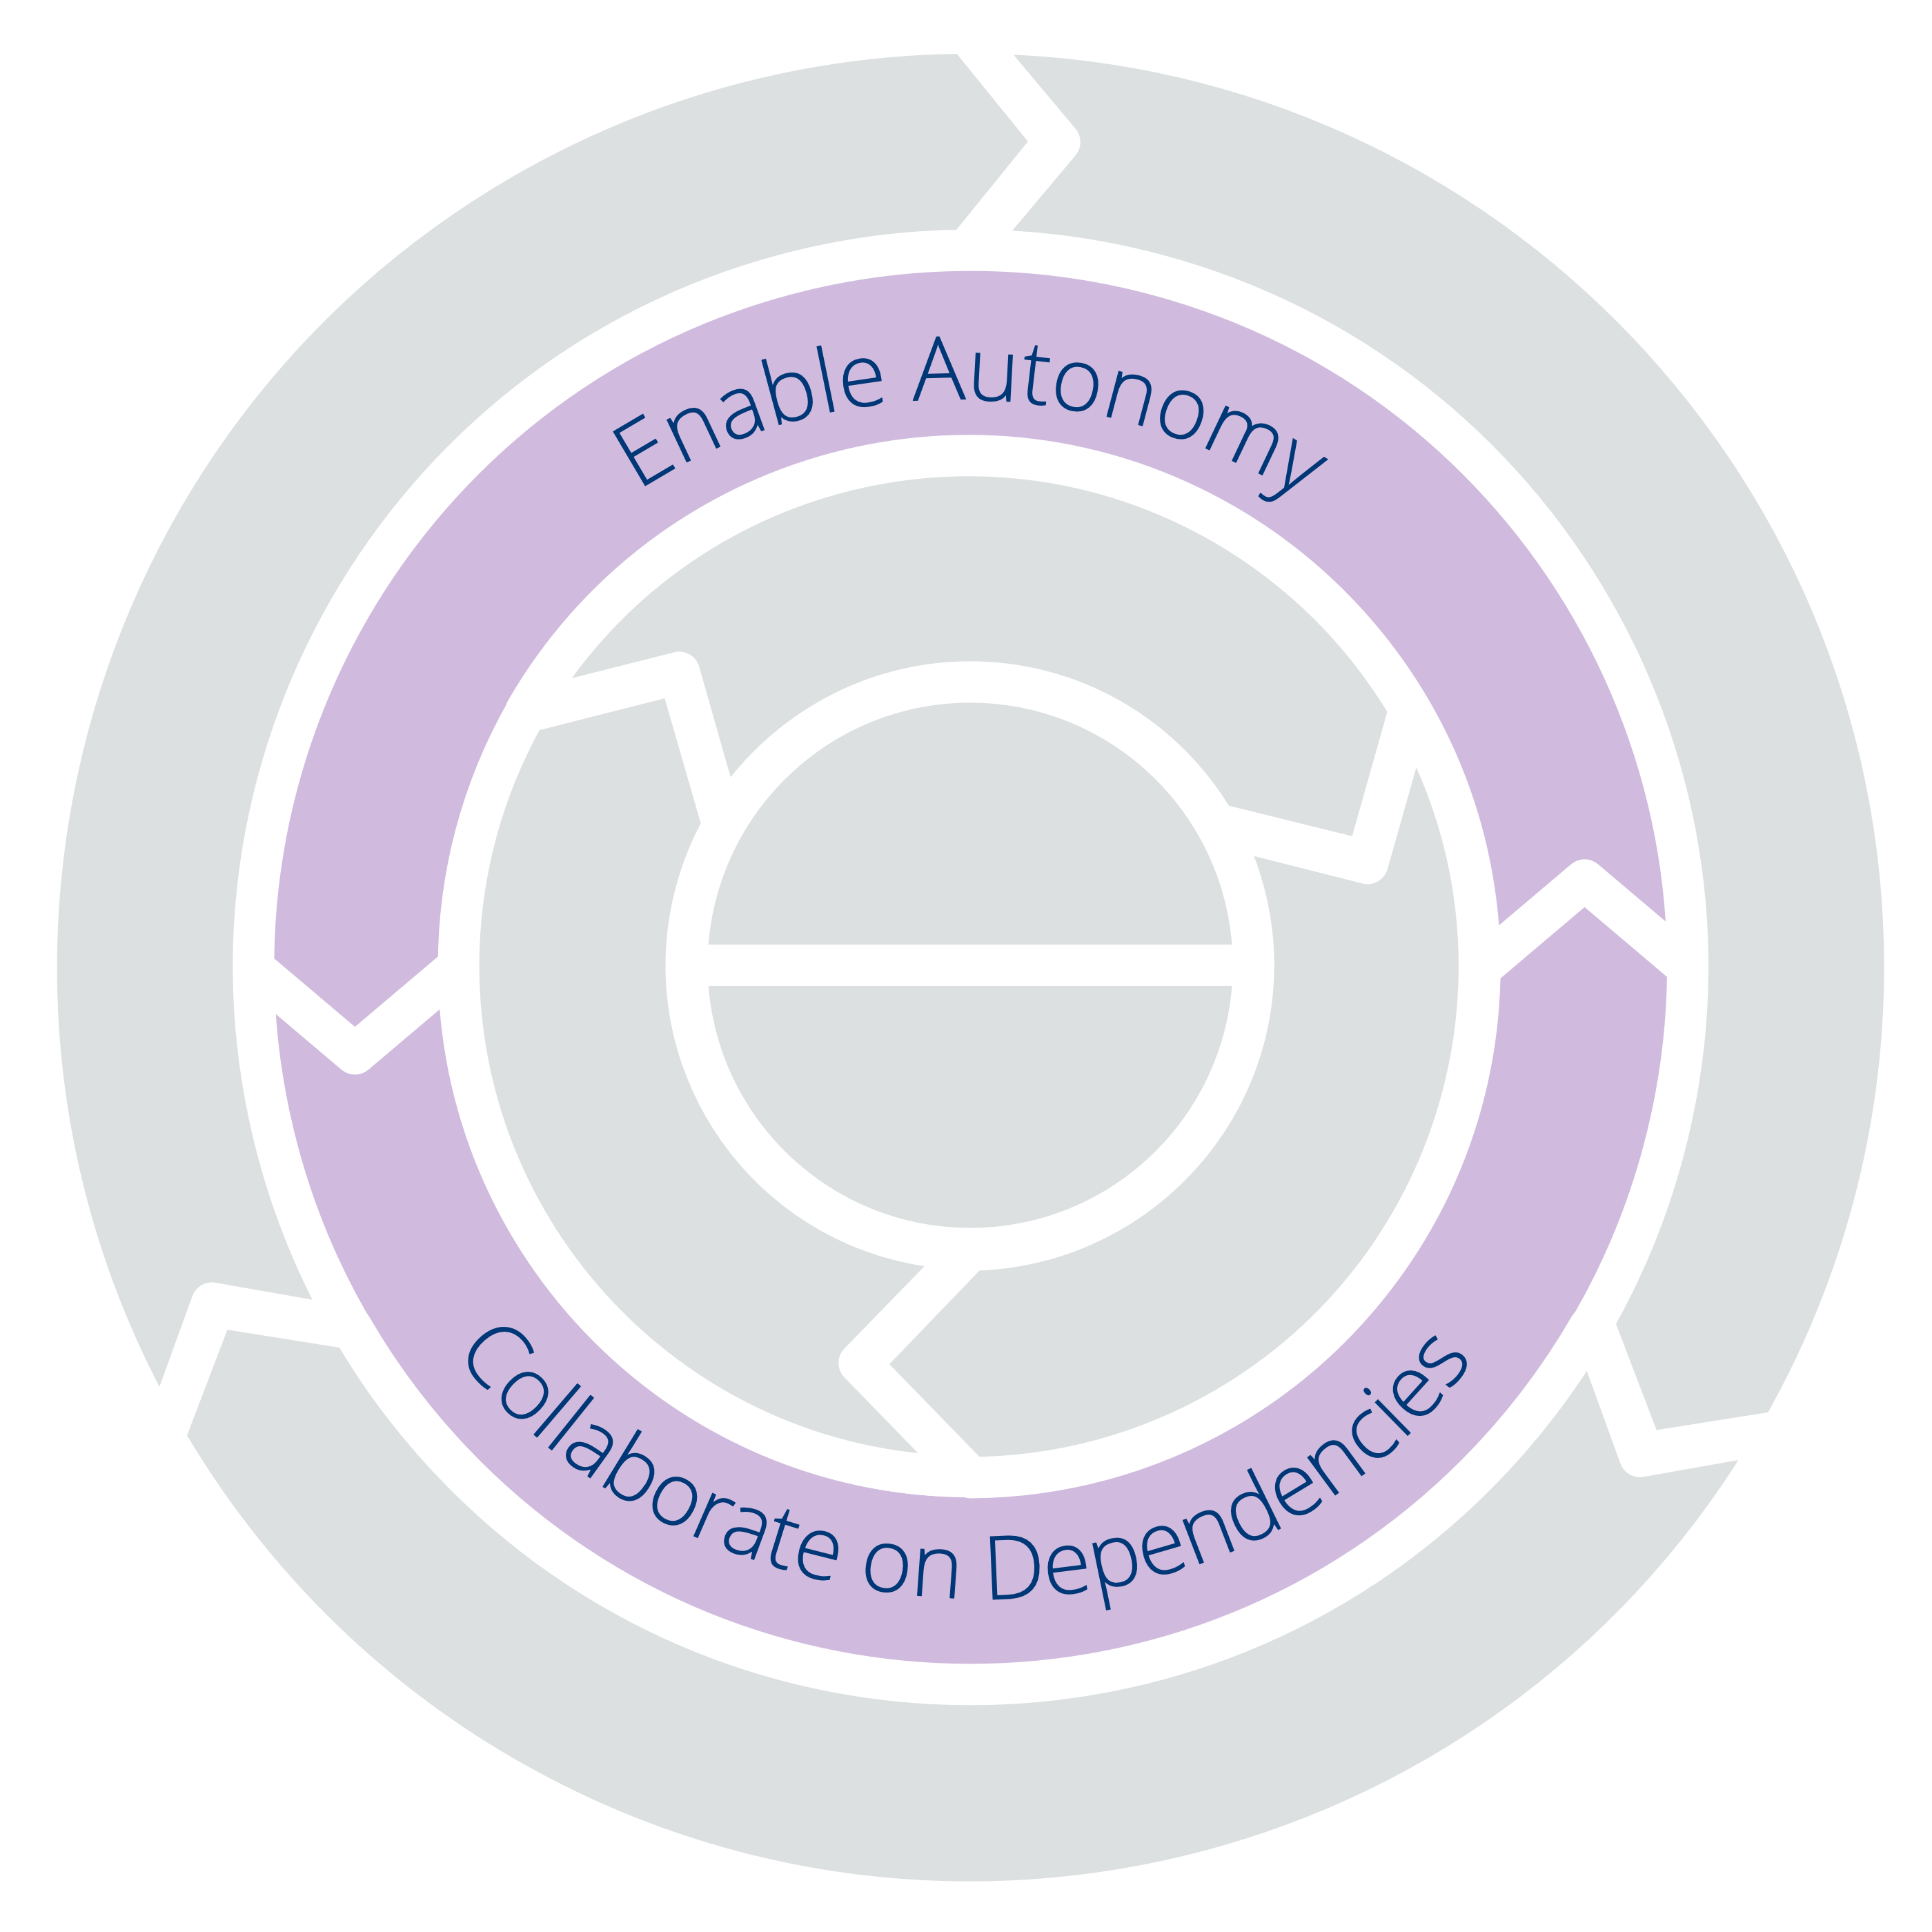 Two Principles for Structure: Enable Autonomy – Collaborate on Dependencies